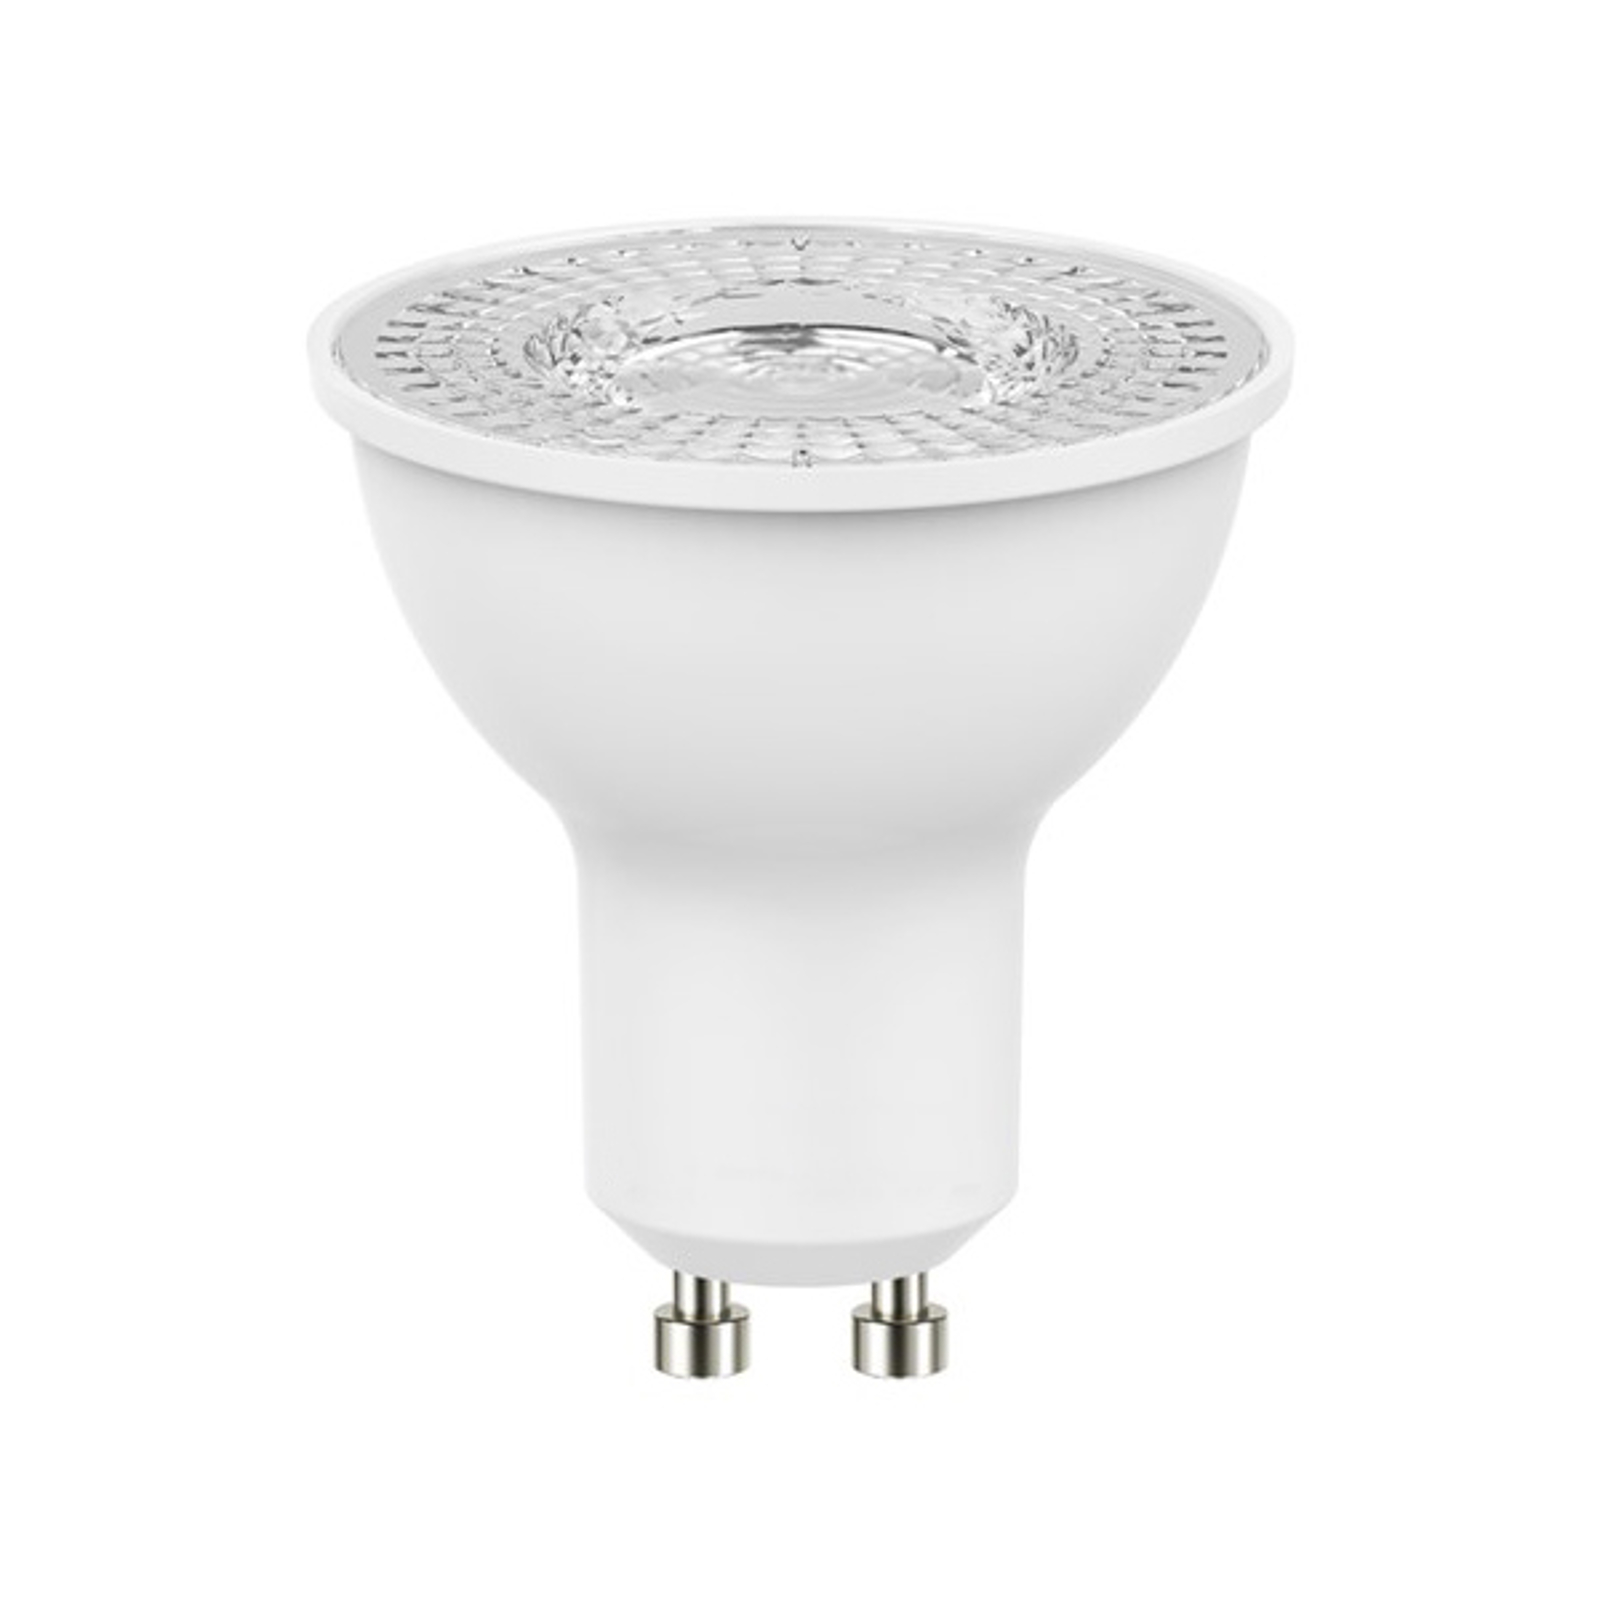 GU10 ES50 4,5W 830 Led-reflectorlamp 110°